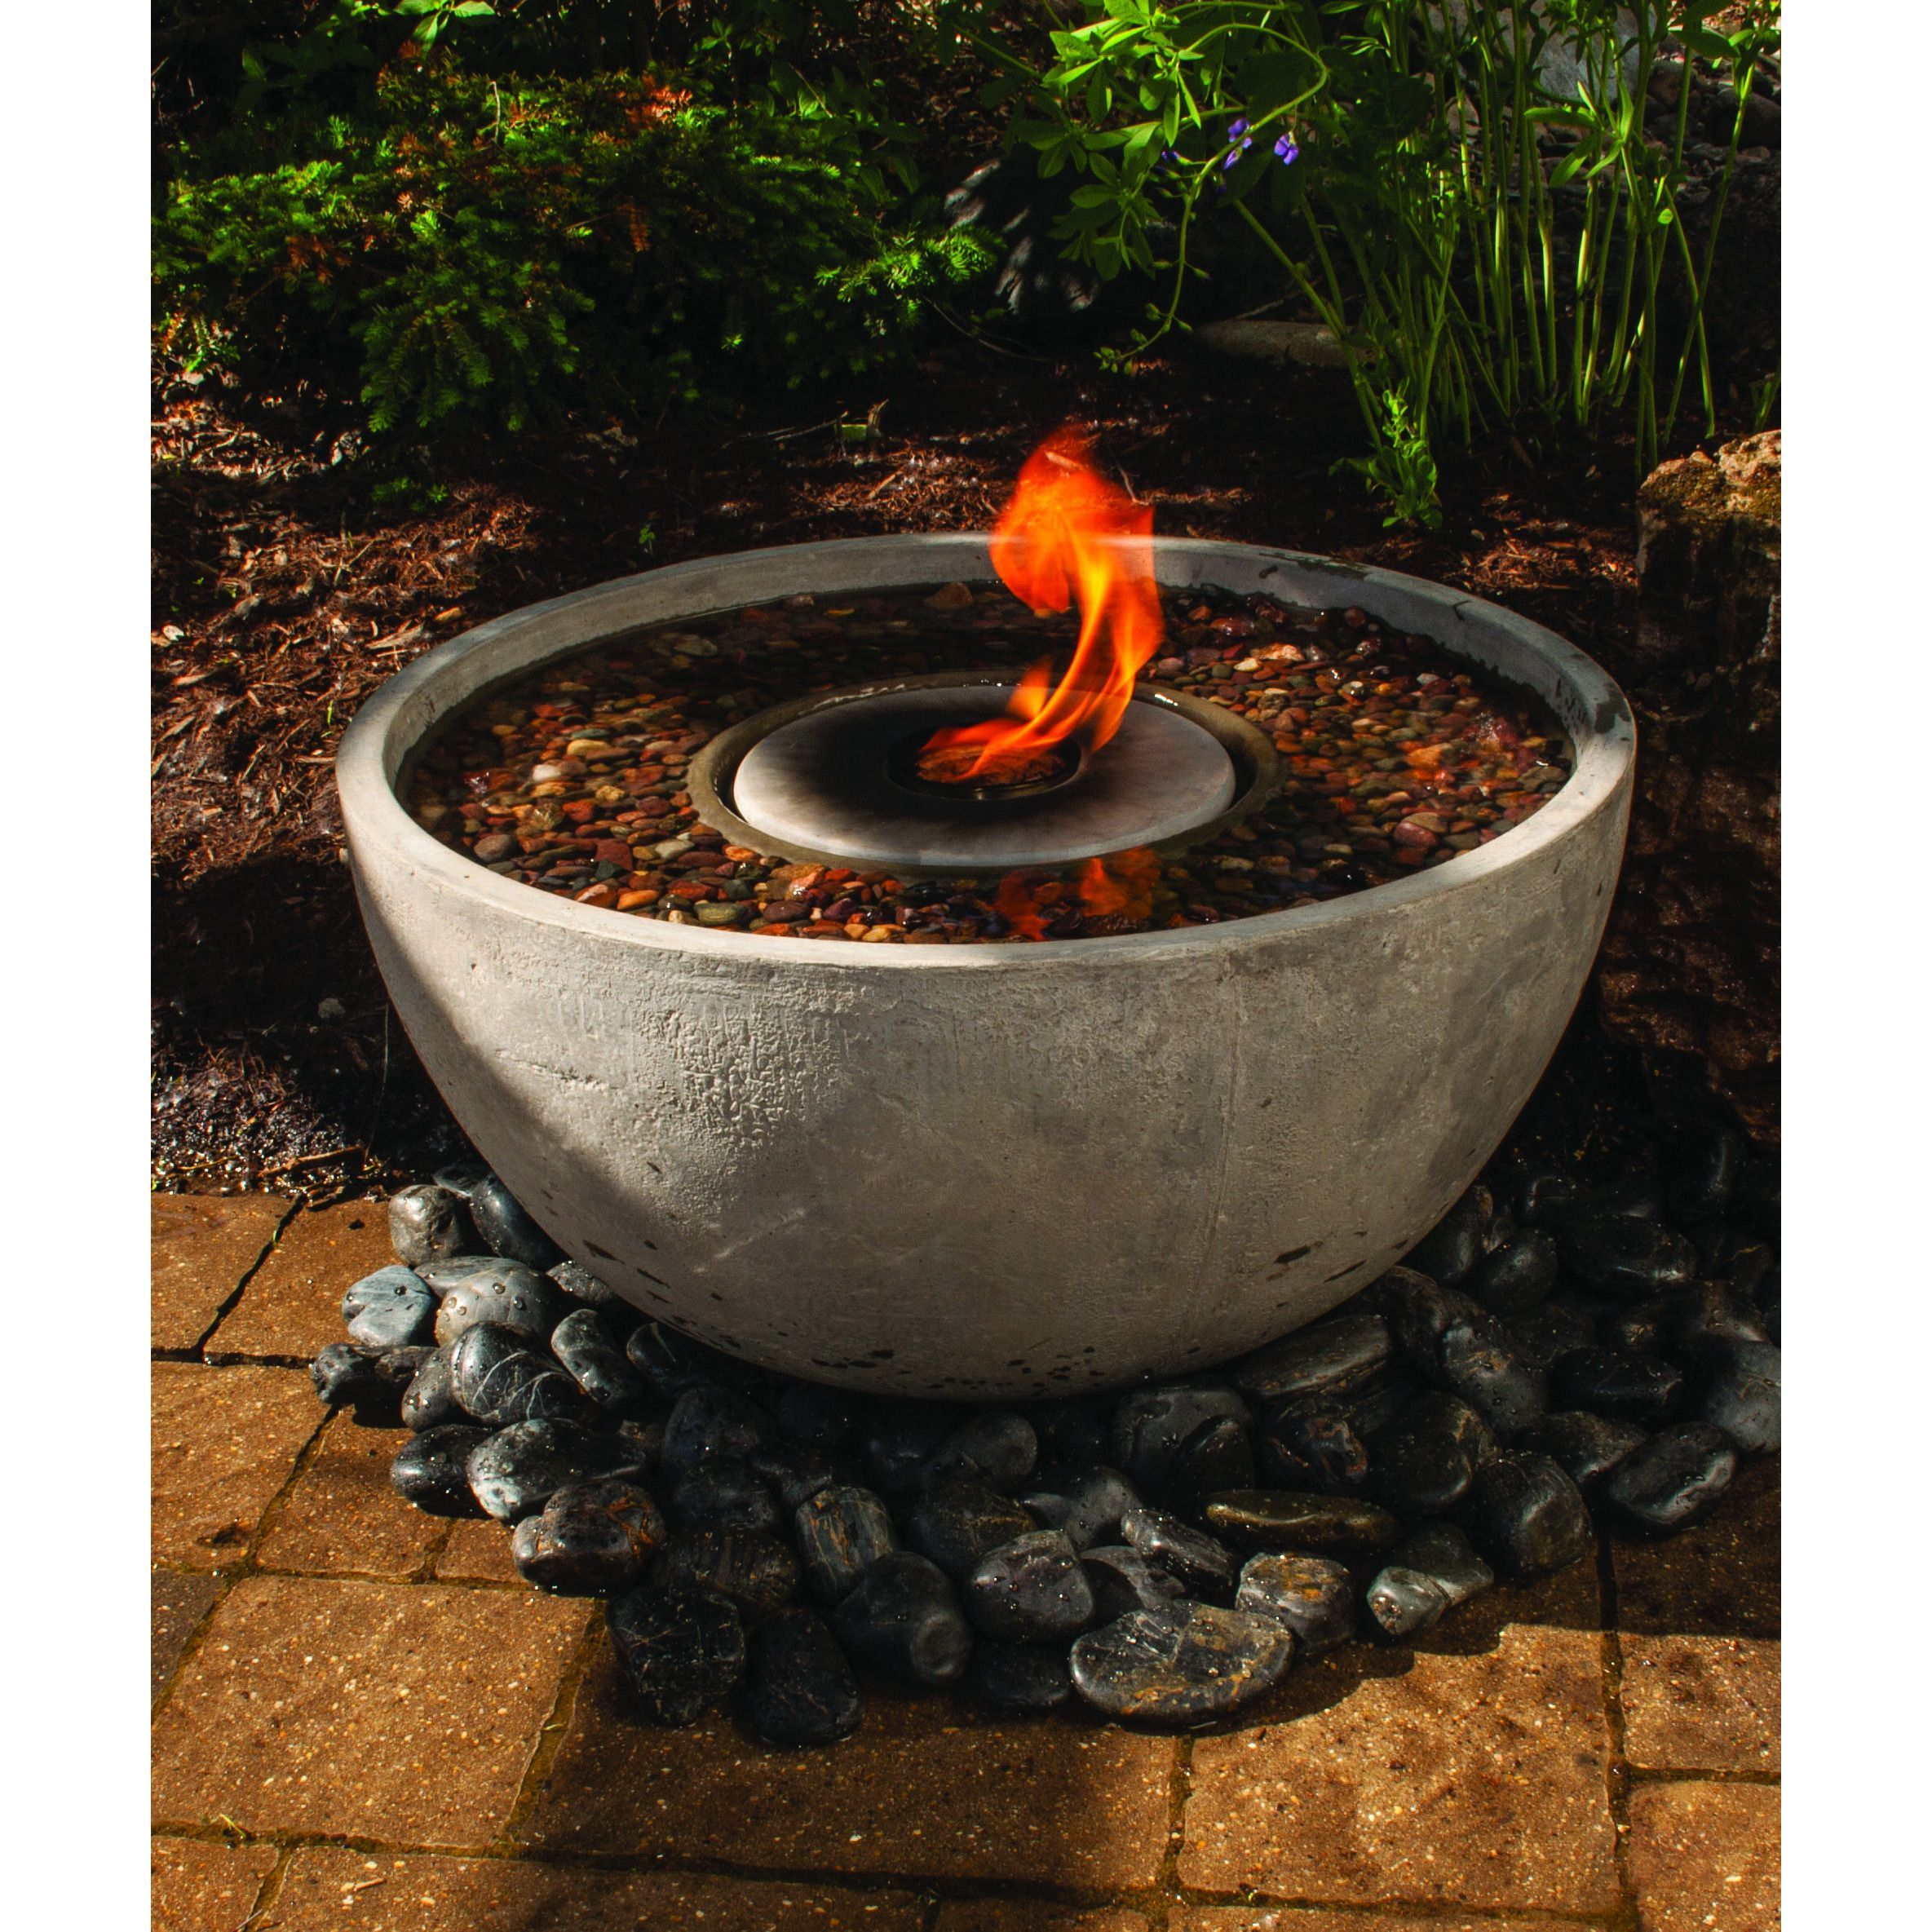 The Aquascape Fire Fountain Adds The Beauty And Elegance Of Fire To A Glass  Fiber Reinforced Concrete Water Feature. The Self Contained Feature Is  Simple To ...